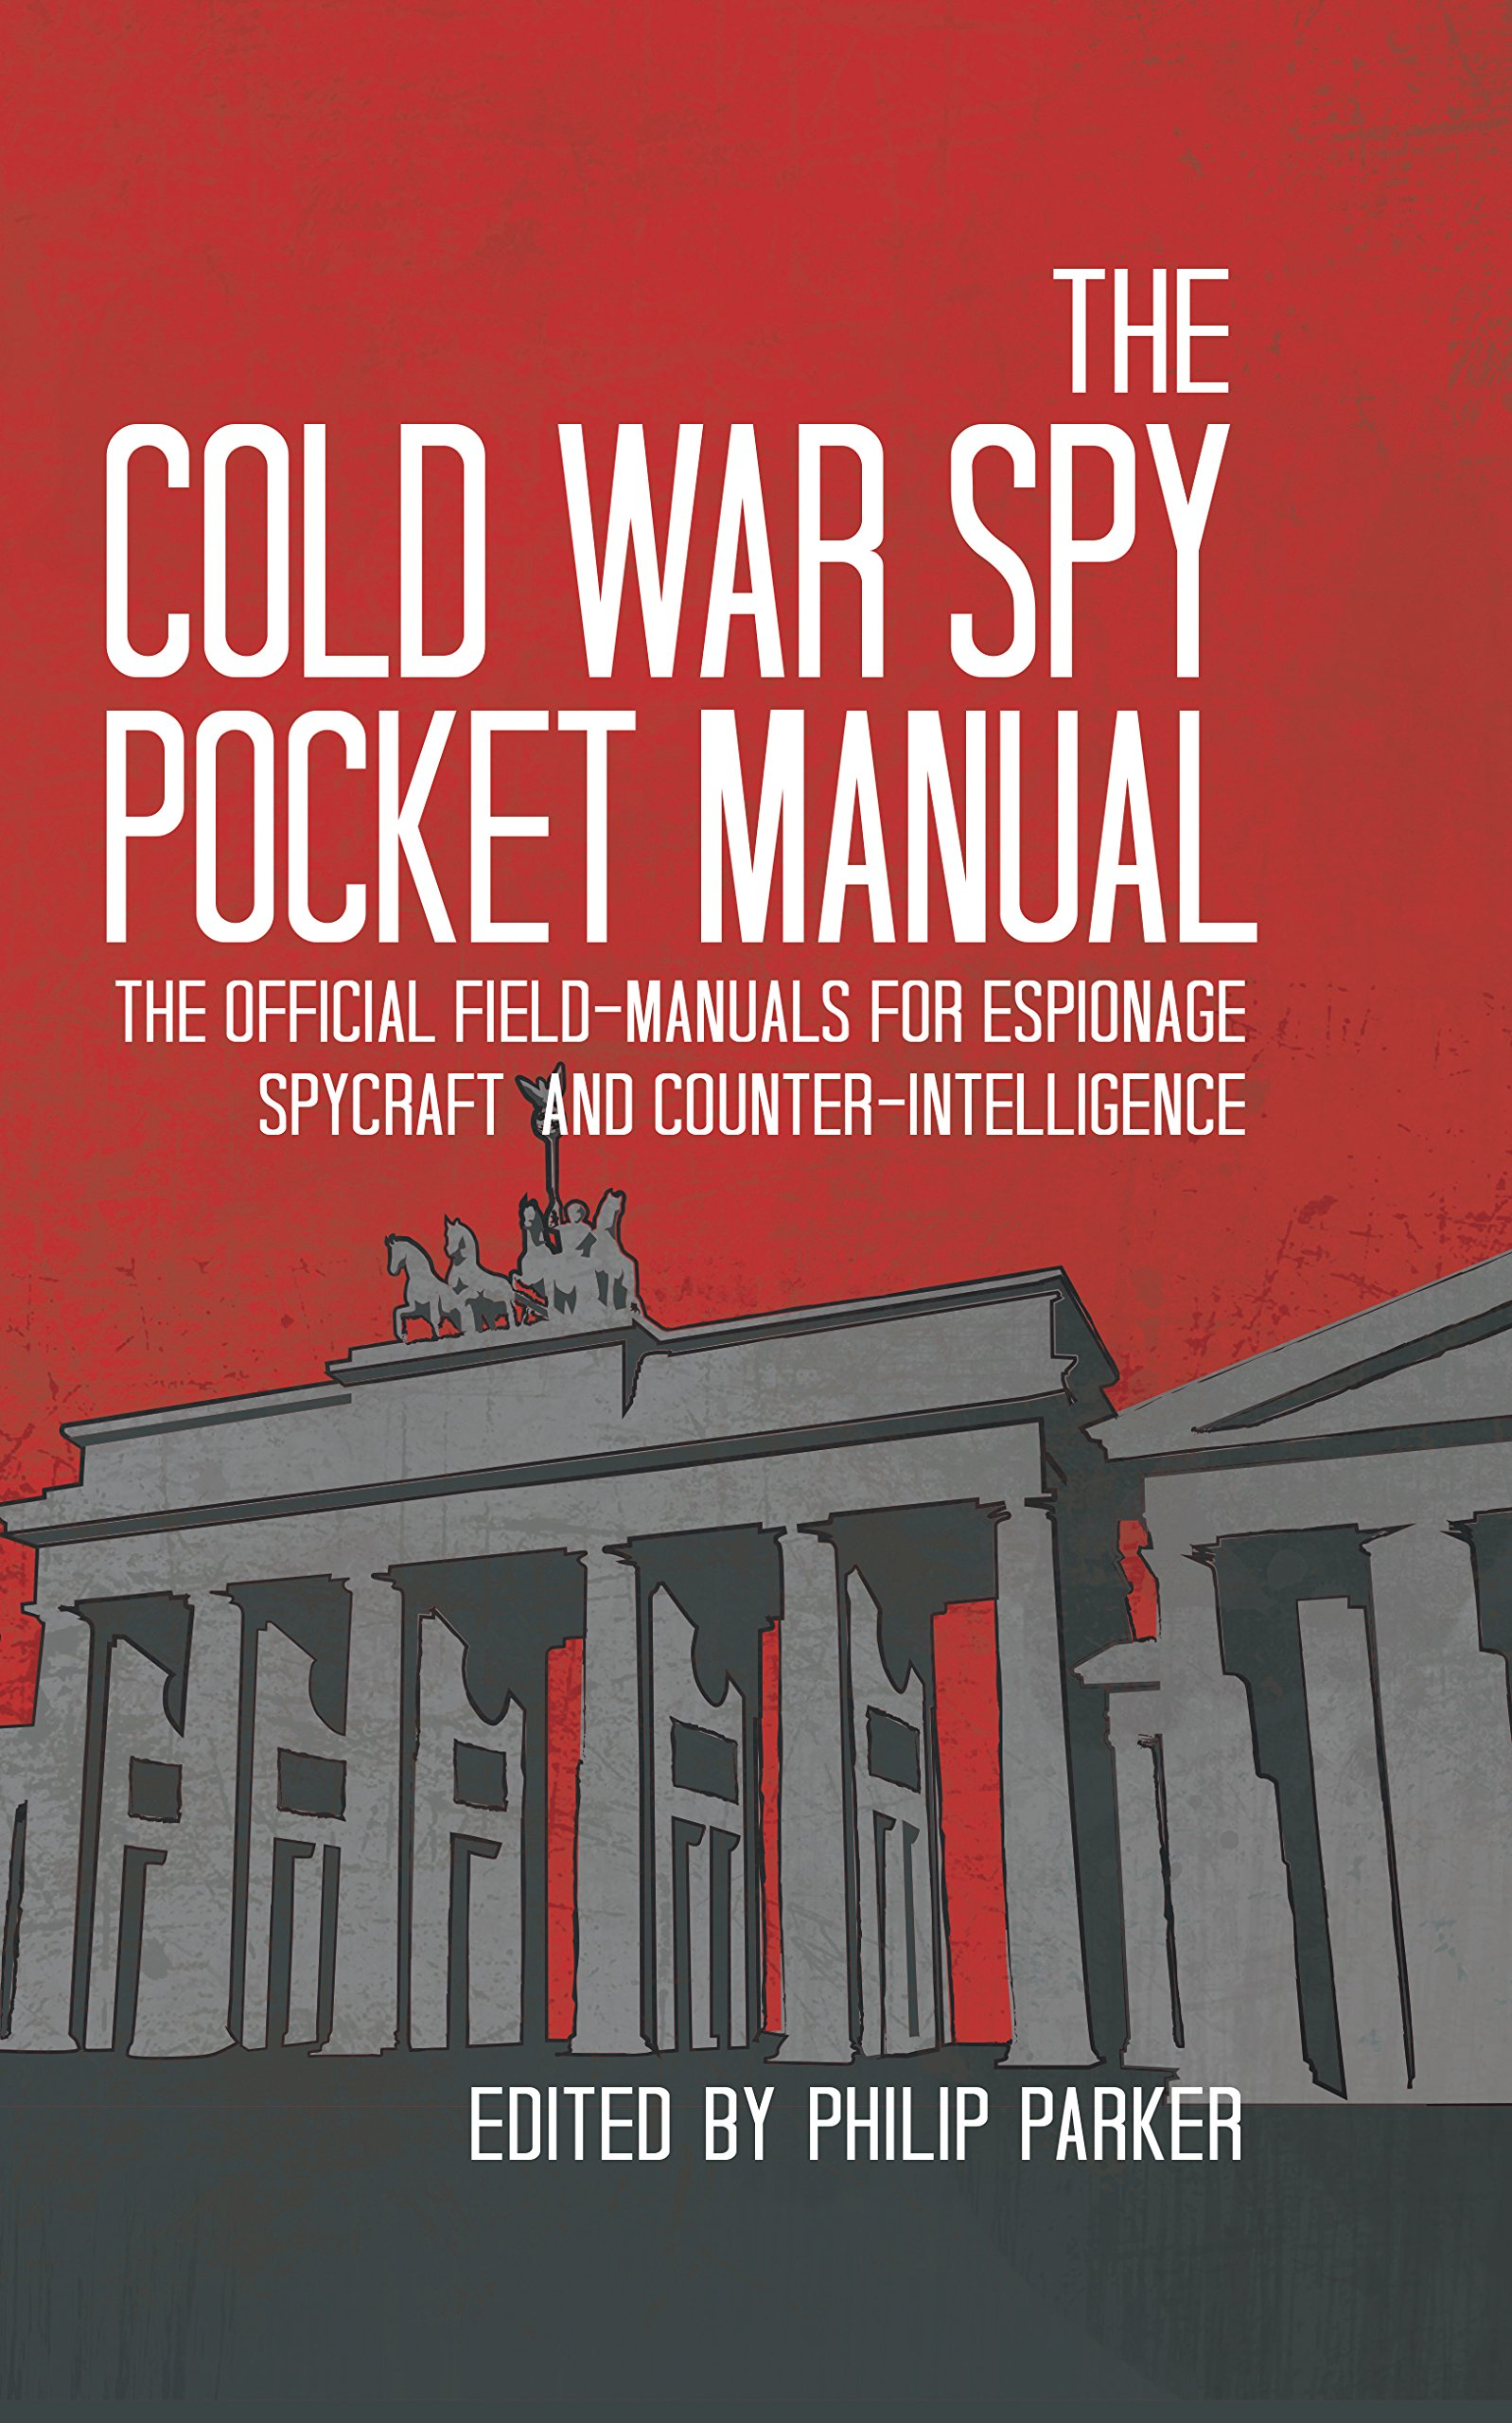 The cold war spy pocket manual the official field manuals for the cold war spy pocket manual the official field manuals for espionage spycraft and counter intelligence philip parker 9781910860021 amazon books fandeluxe Image collections